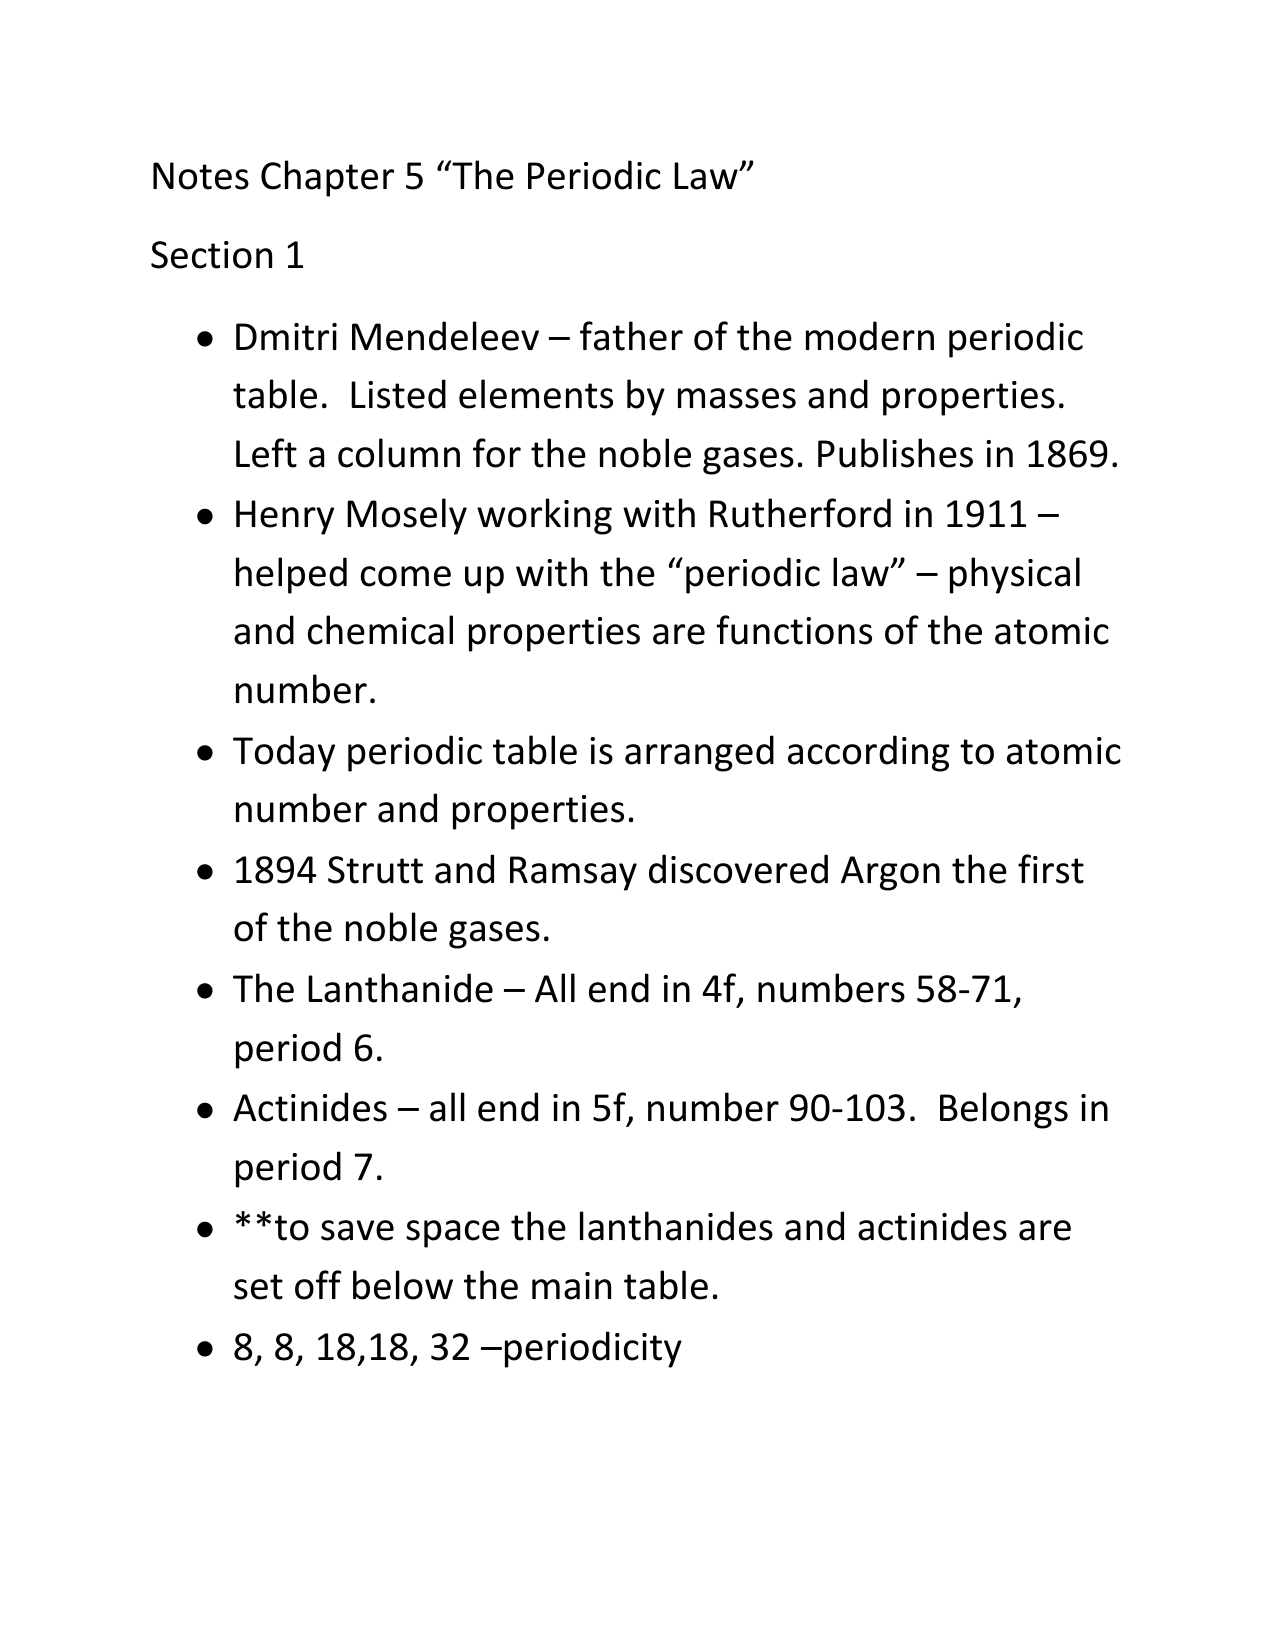 Notes chapter 5 the periodic law section 1 dmitri mendeleev gamestrikefo Images